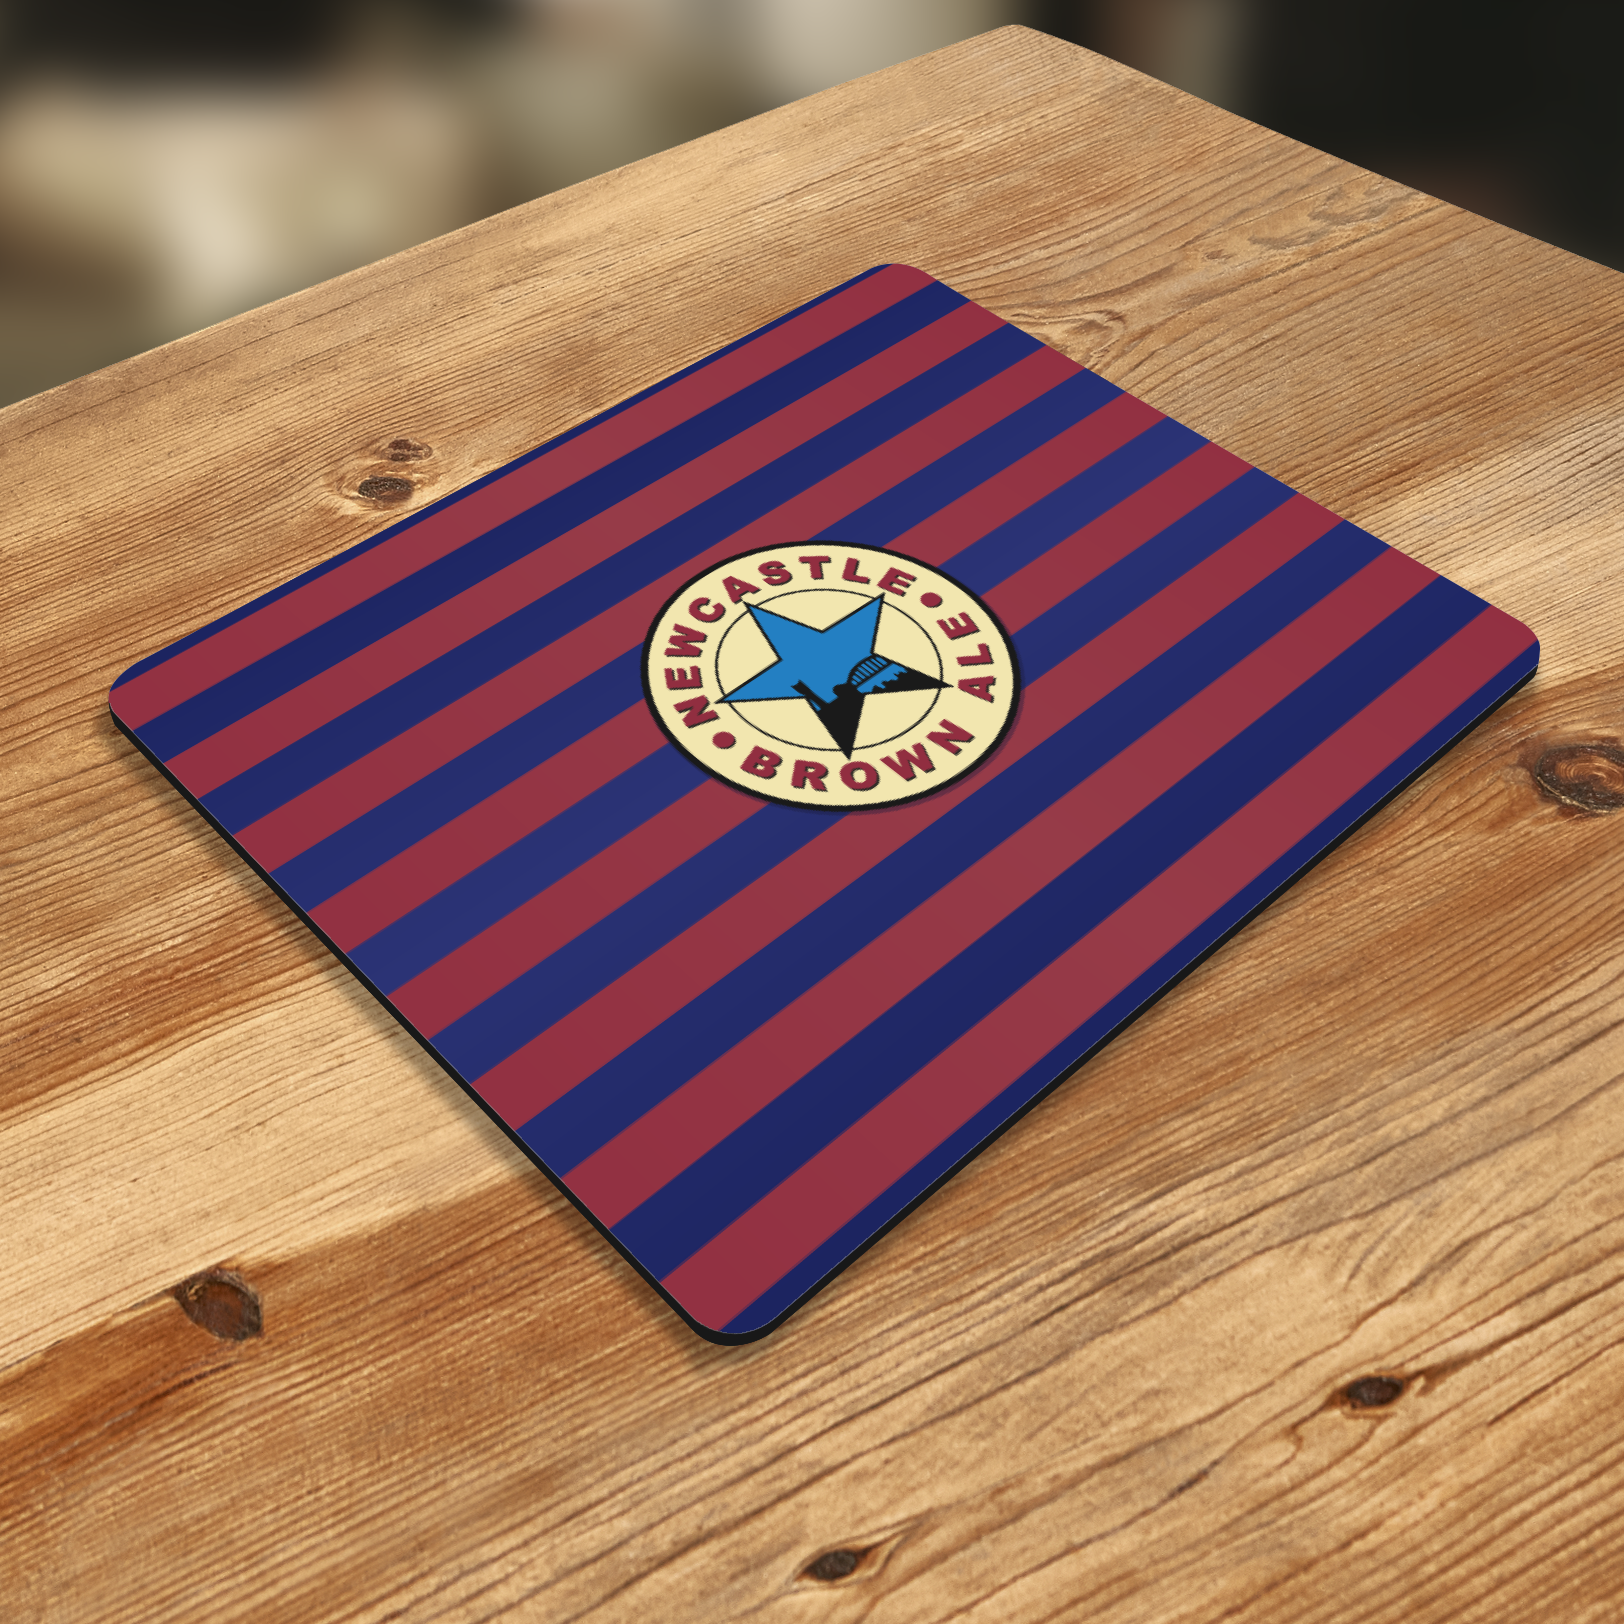 NEWCASTLE MOUSE MAT 1996 AWAY